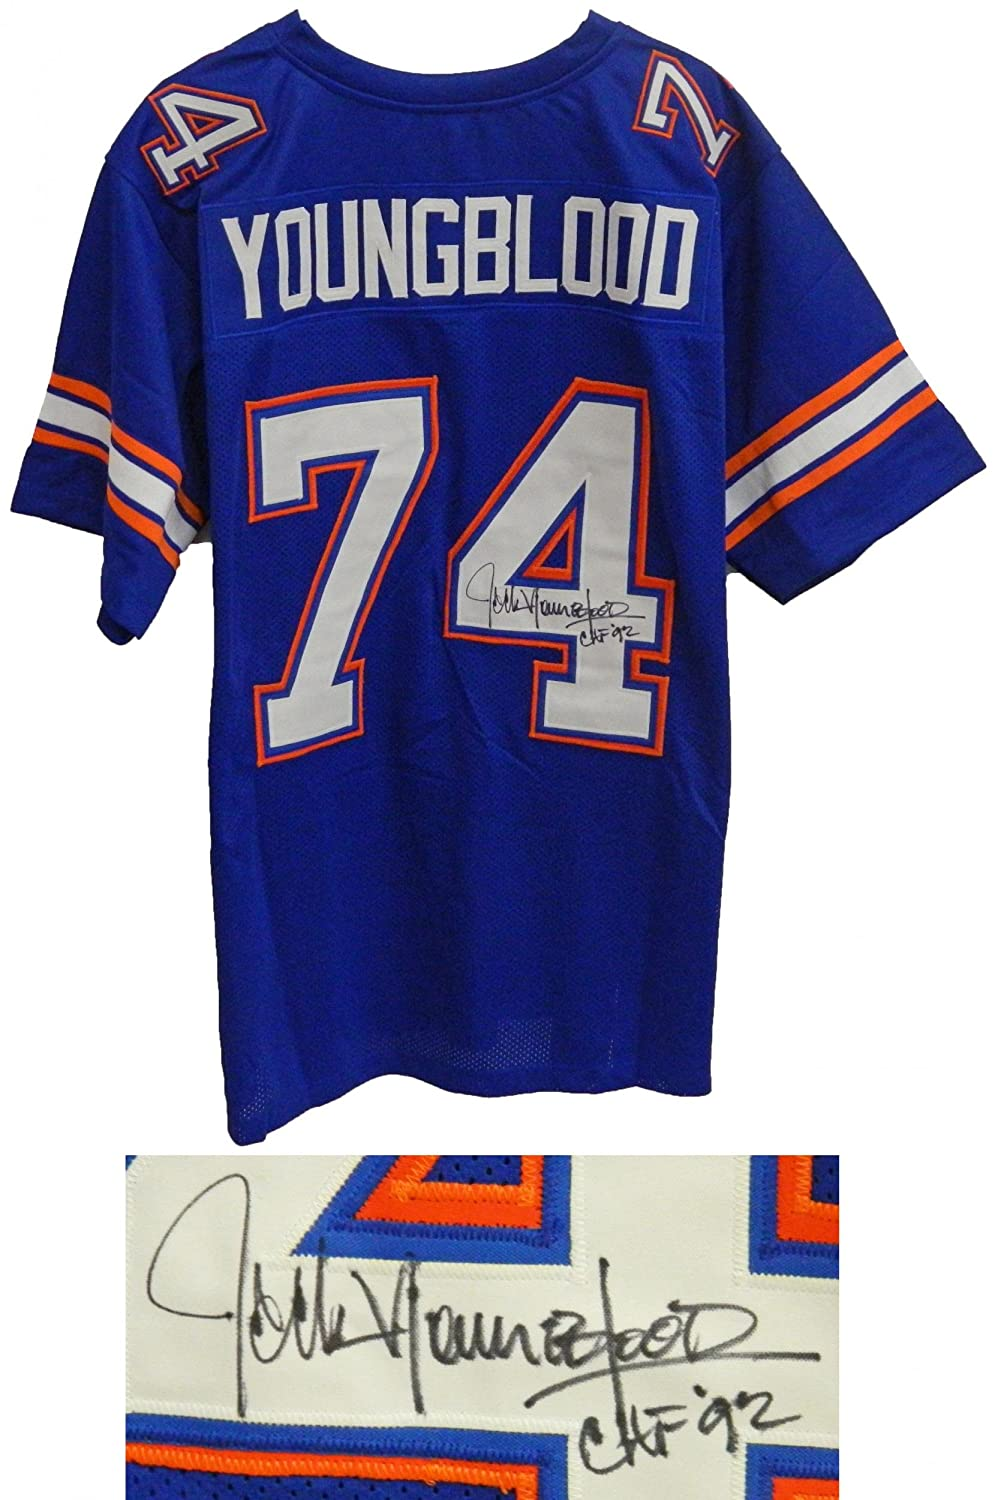 Los angeles lakers cheap nfl elite jerseys mlb coolbase jerseys nba - Cheap Jack Youngblood Signed Blue Custom Football Jersey W Chf 92 Autographed Nfl